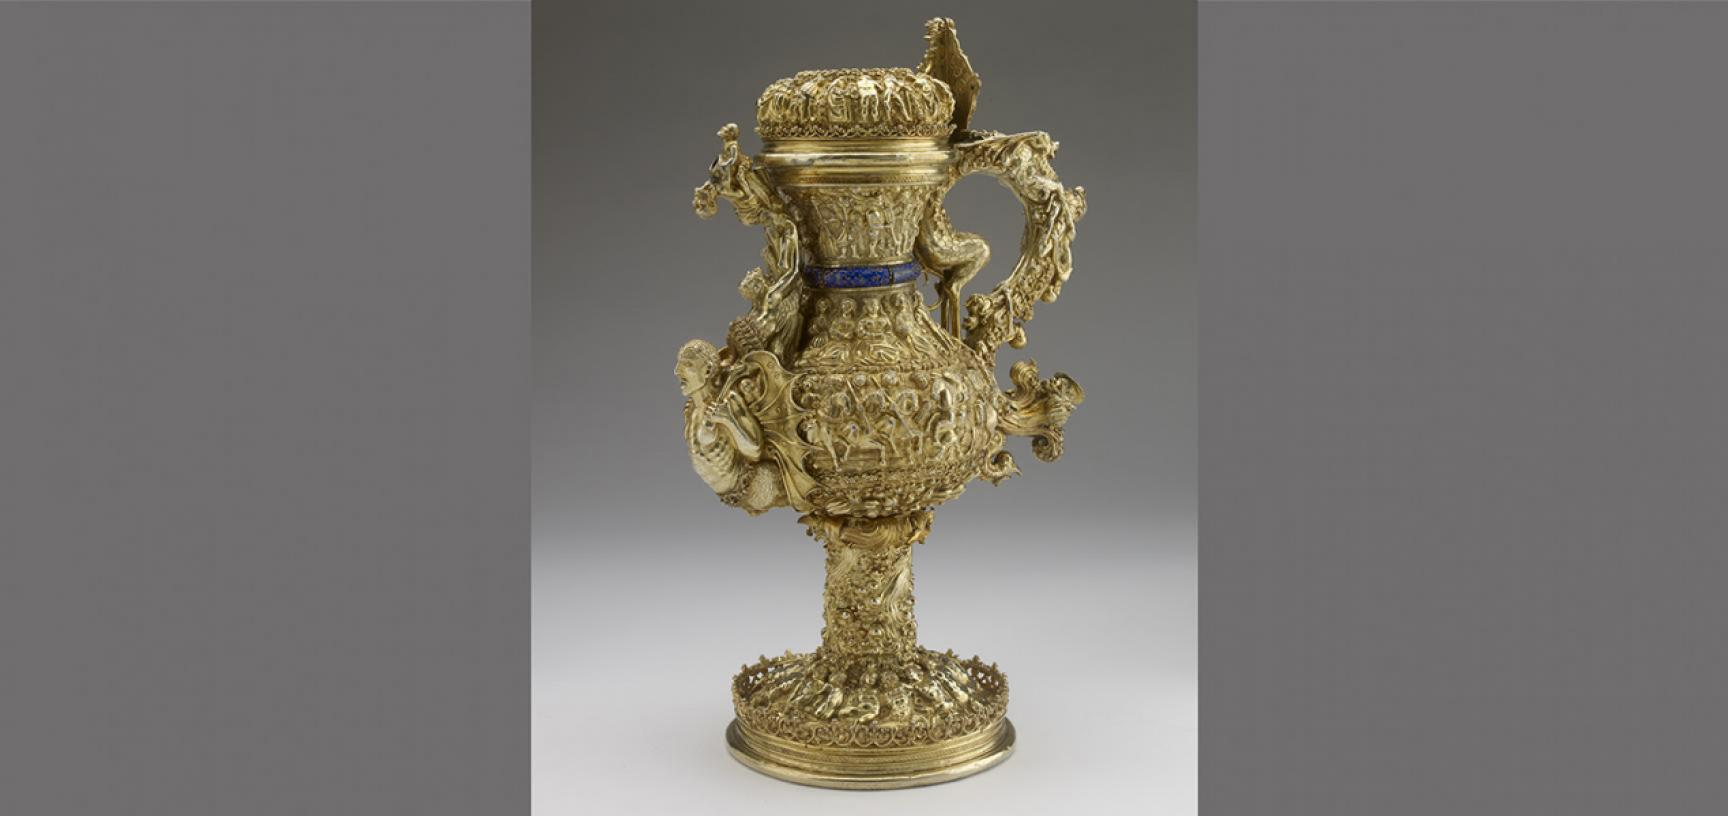 PORTUGUESE GILT EWER from the Ashmolean collections